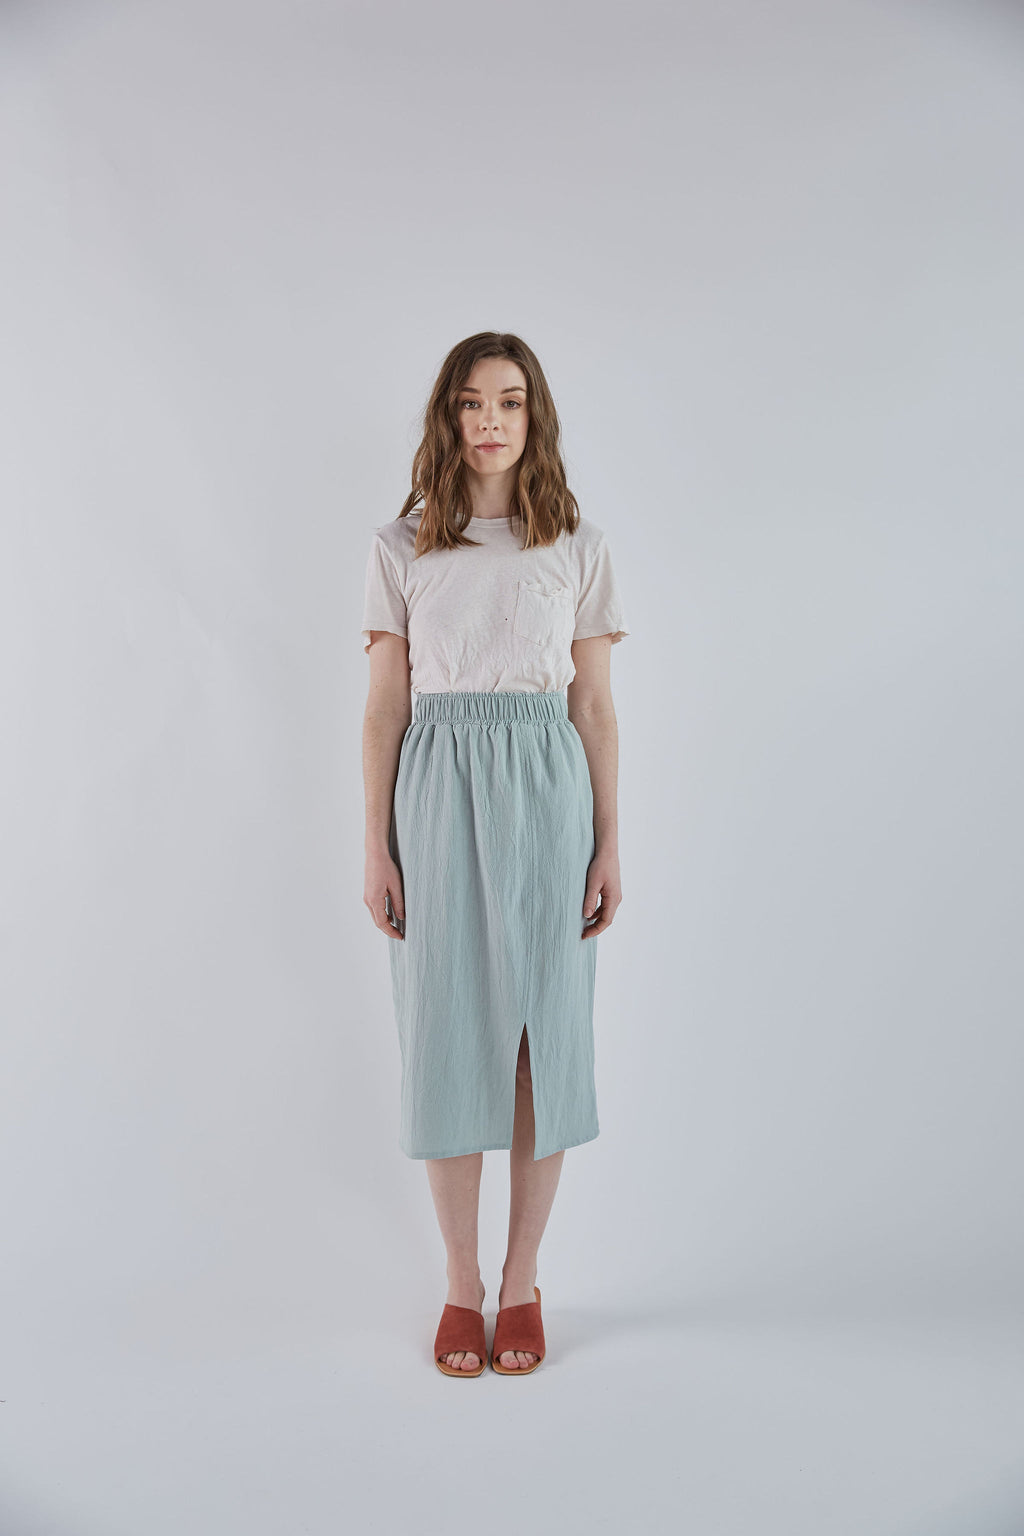 Ellie Skirt in Mint